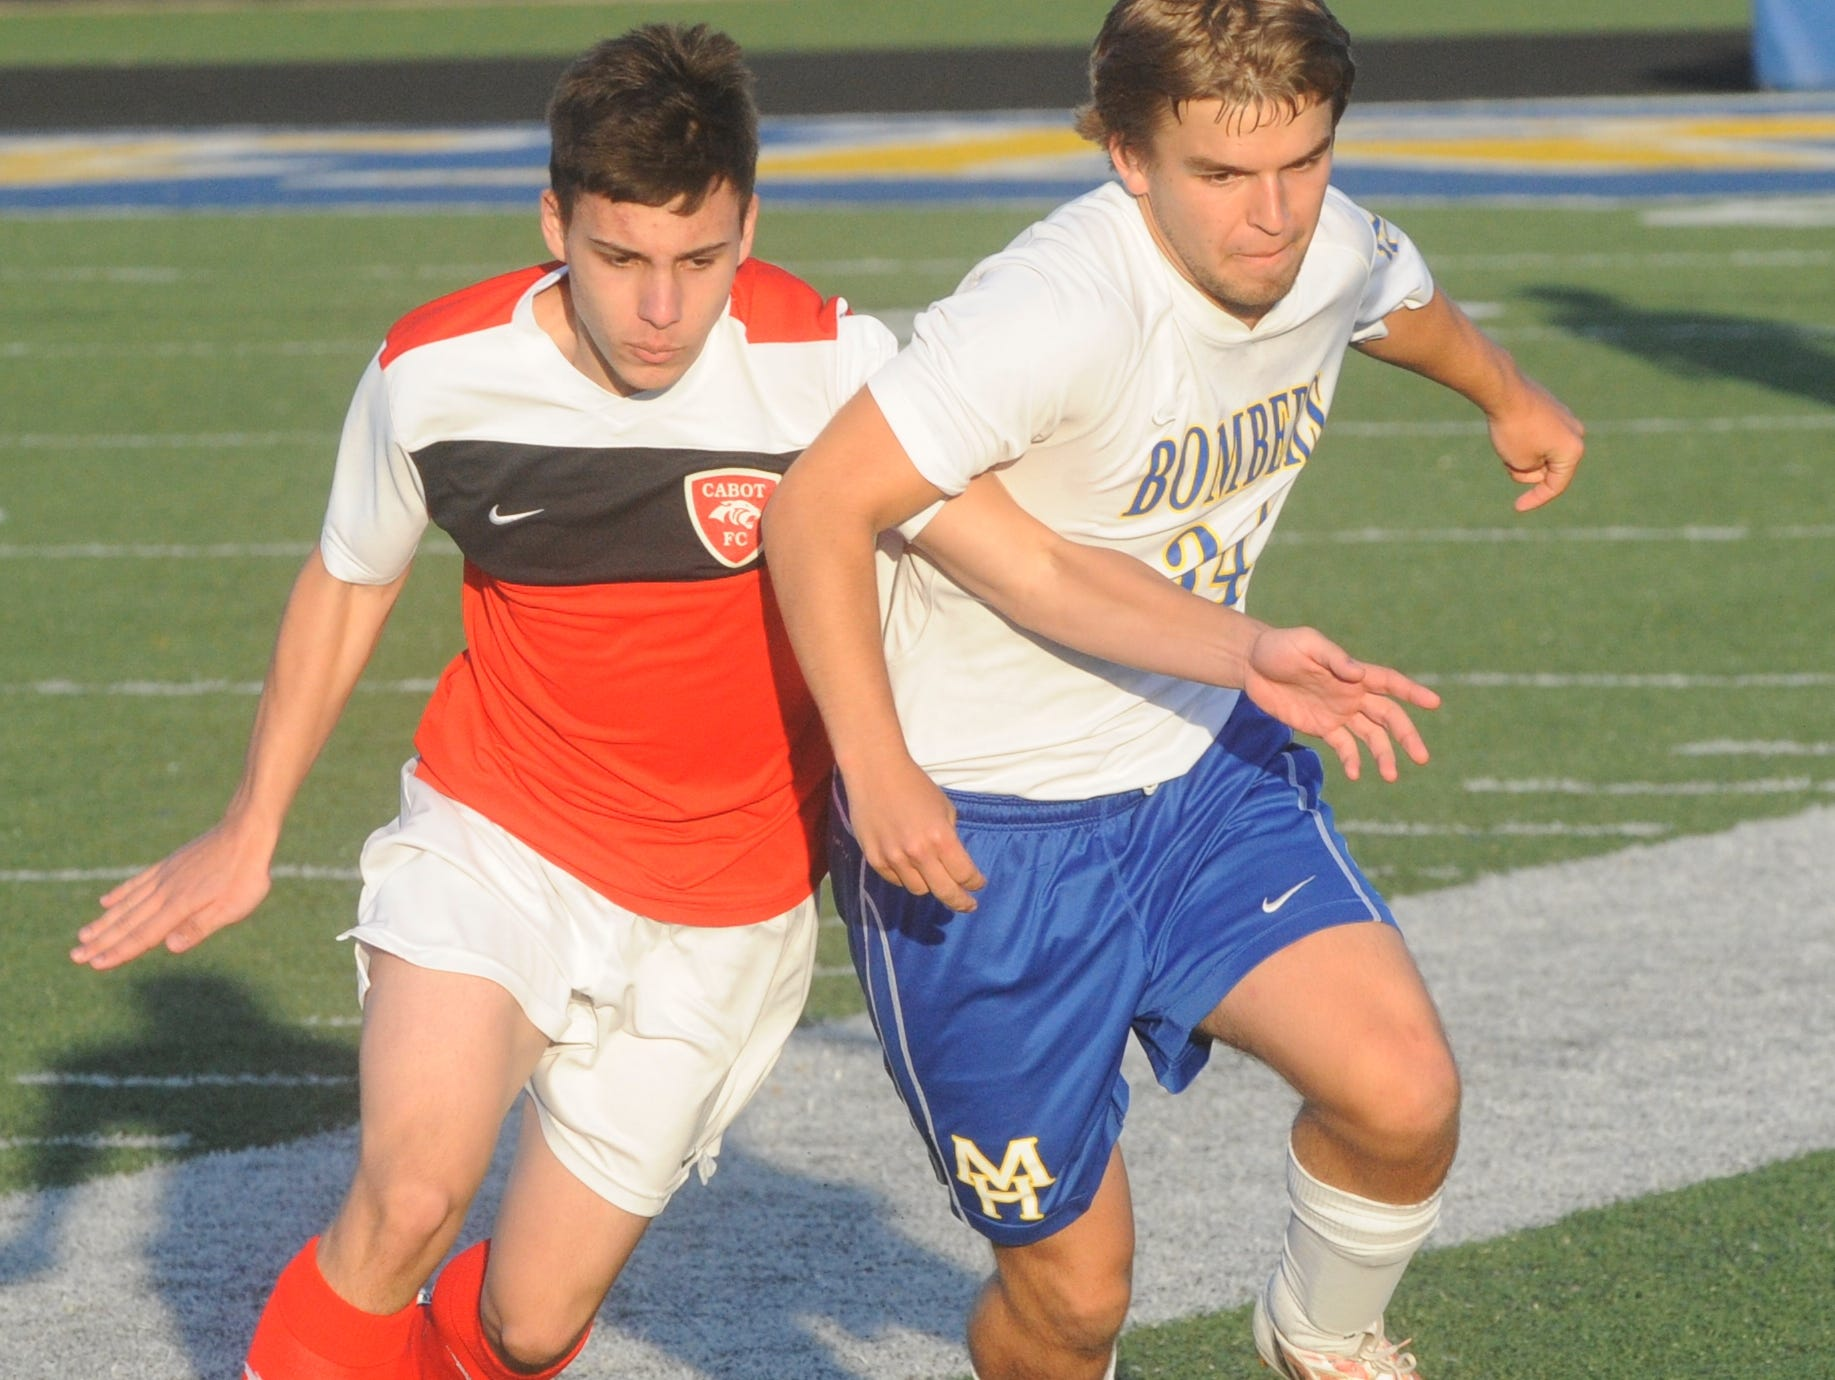 Mountain Home's Drew Hatman, right, battles a Cabot player for the ball during the Bombers' match against the Panthers on Friday night at Bomber Stadium.